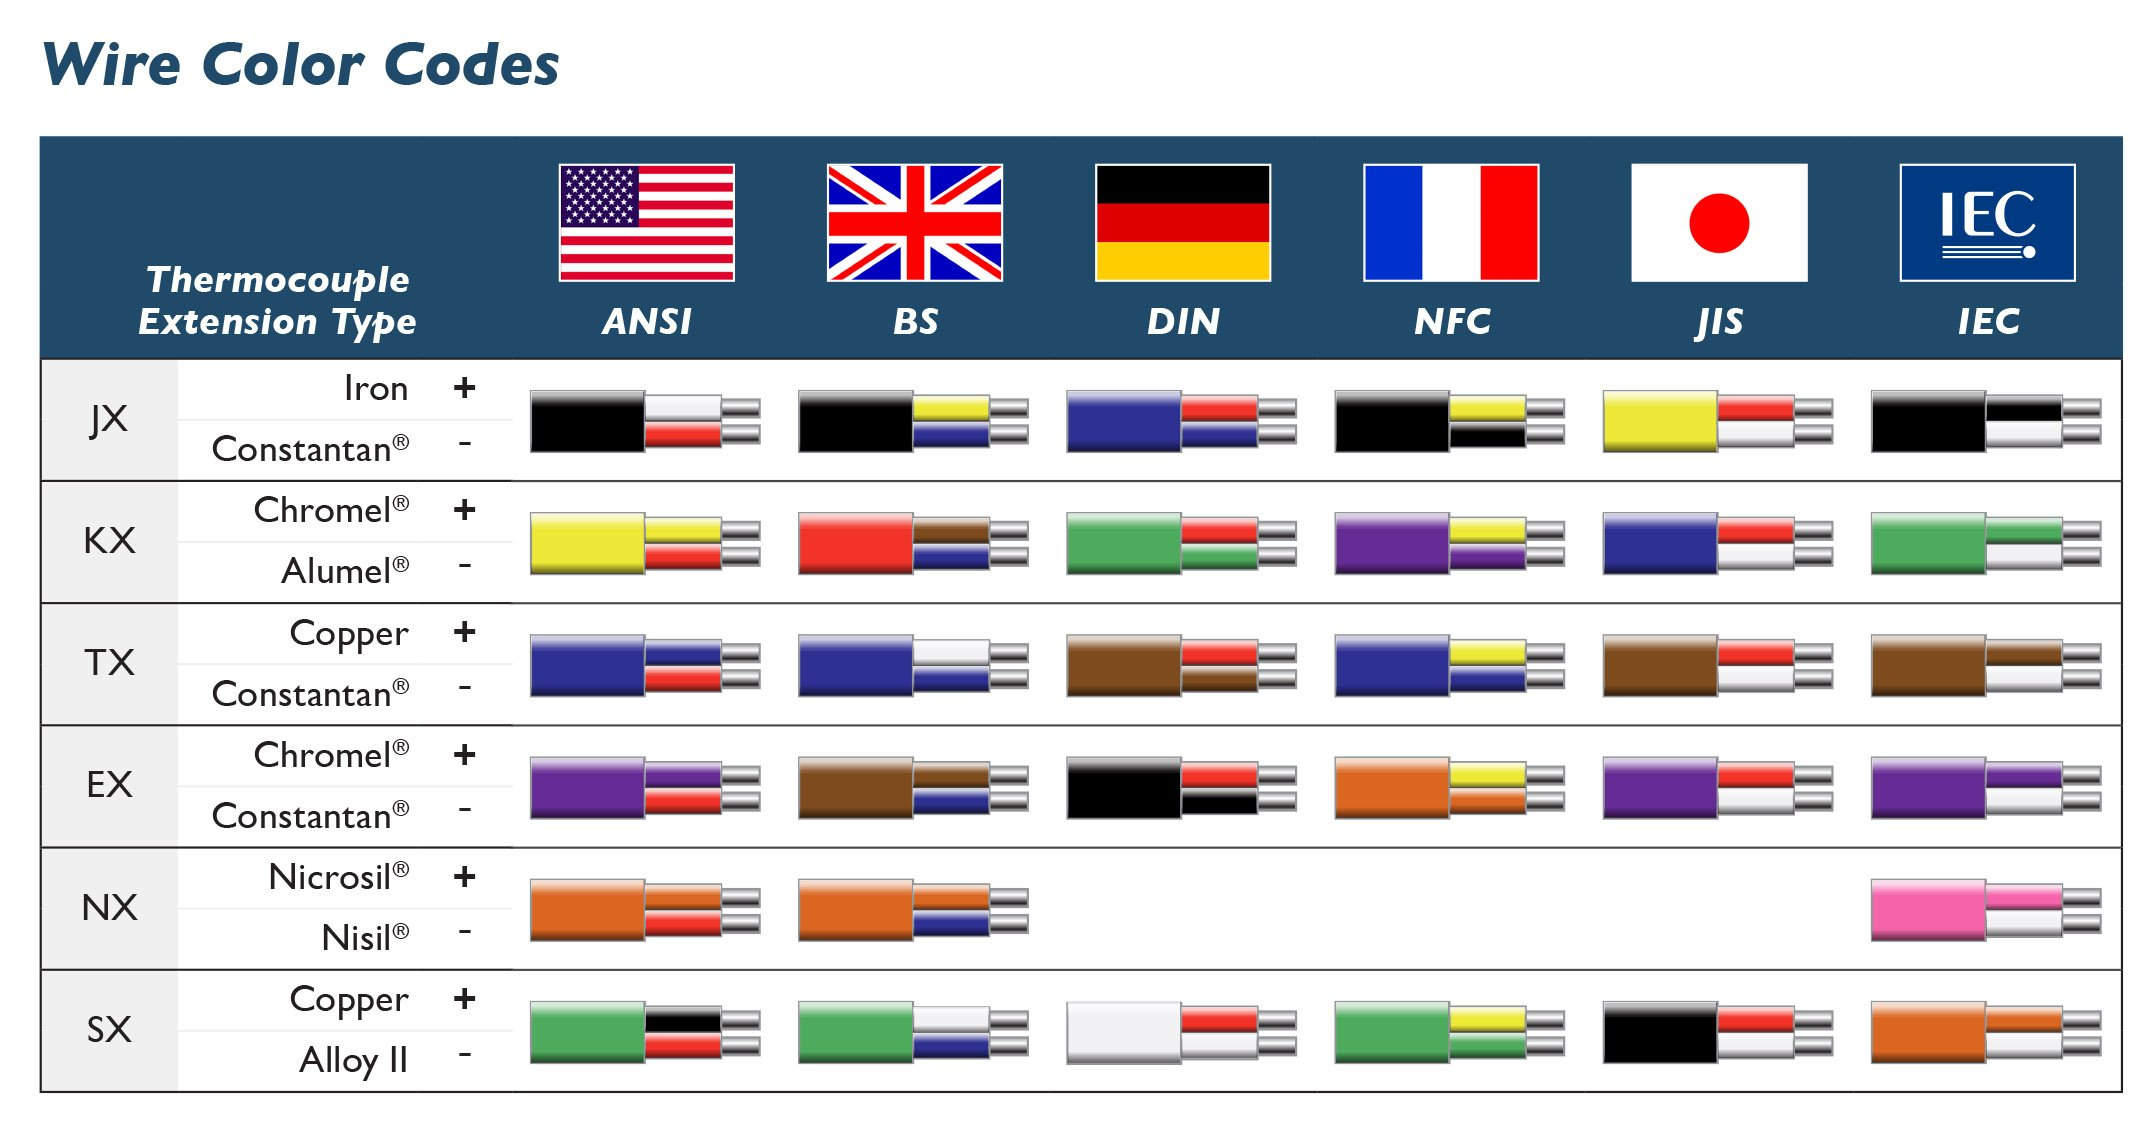 United States Wiring Color Codes